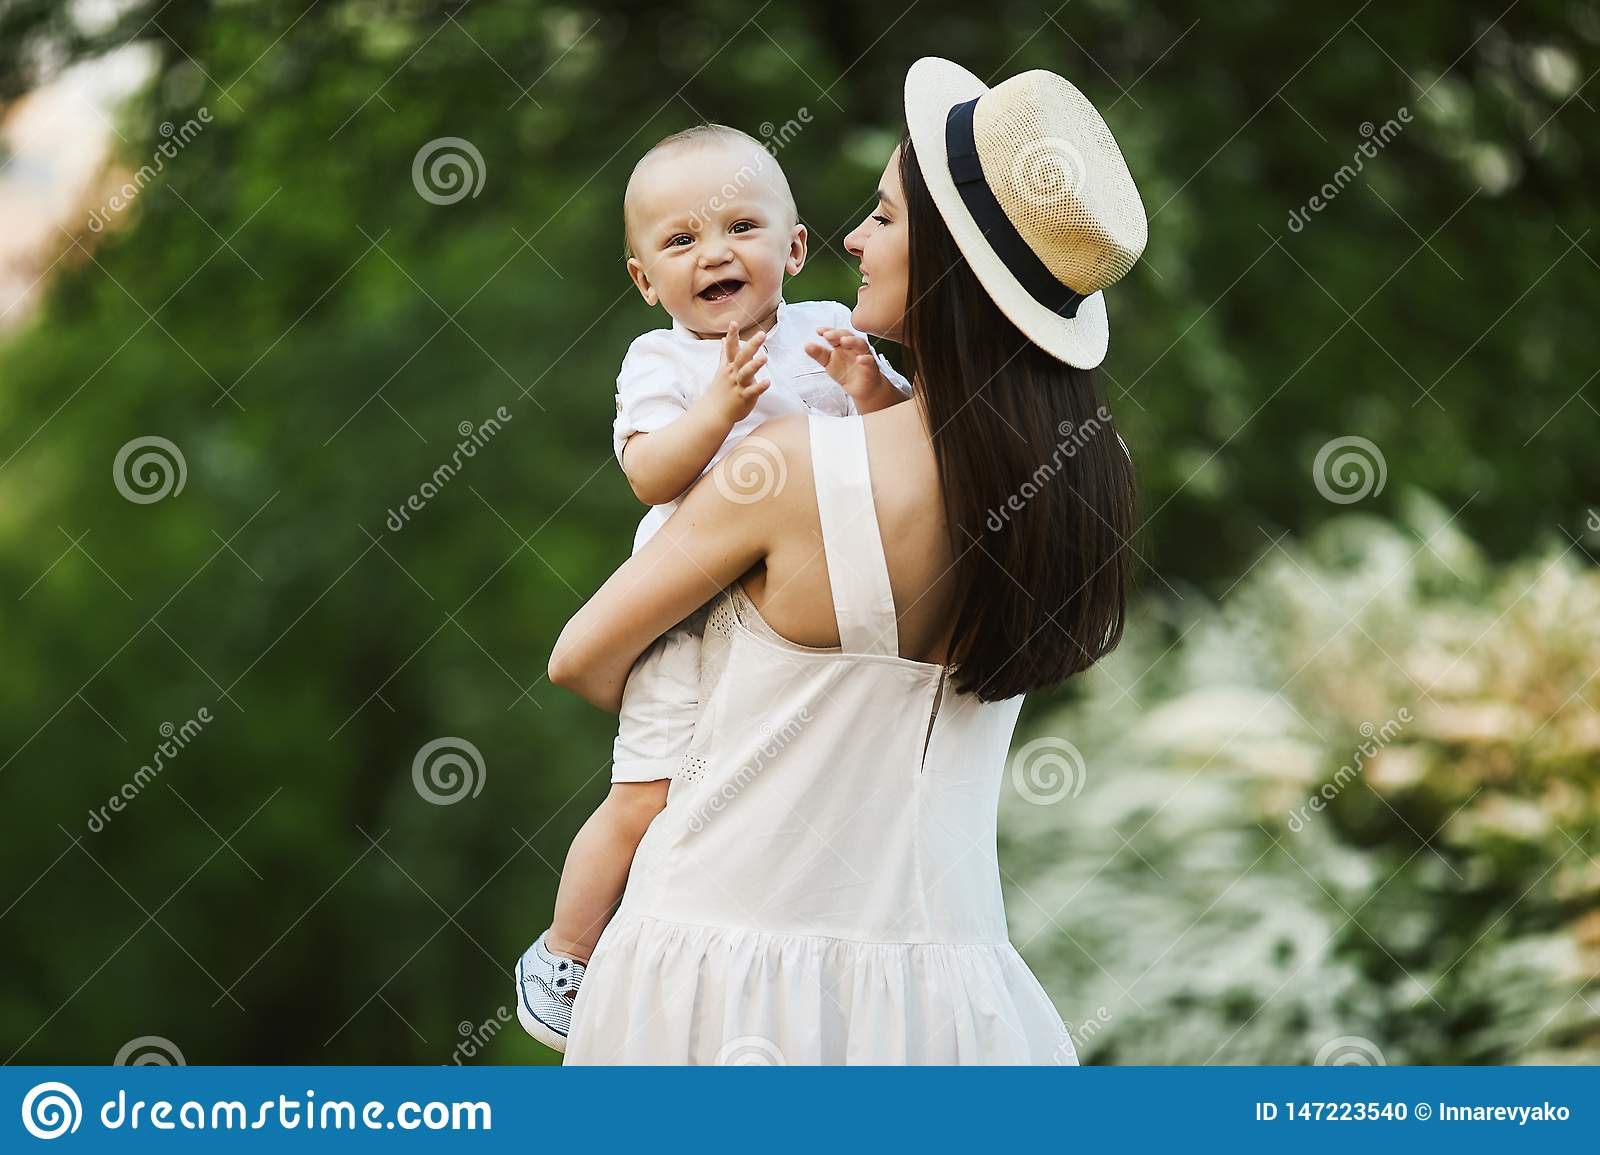 Beautiful young woman in the stylish hat and in a white dress with her cute little son in shirt and shorts on her hands